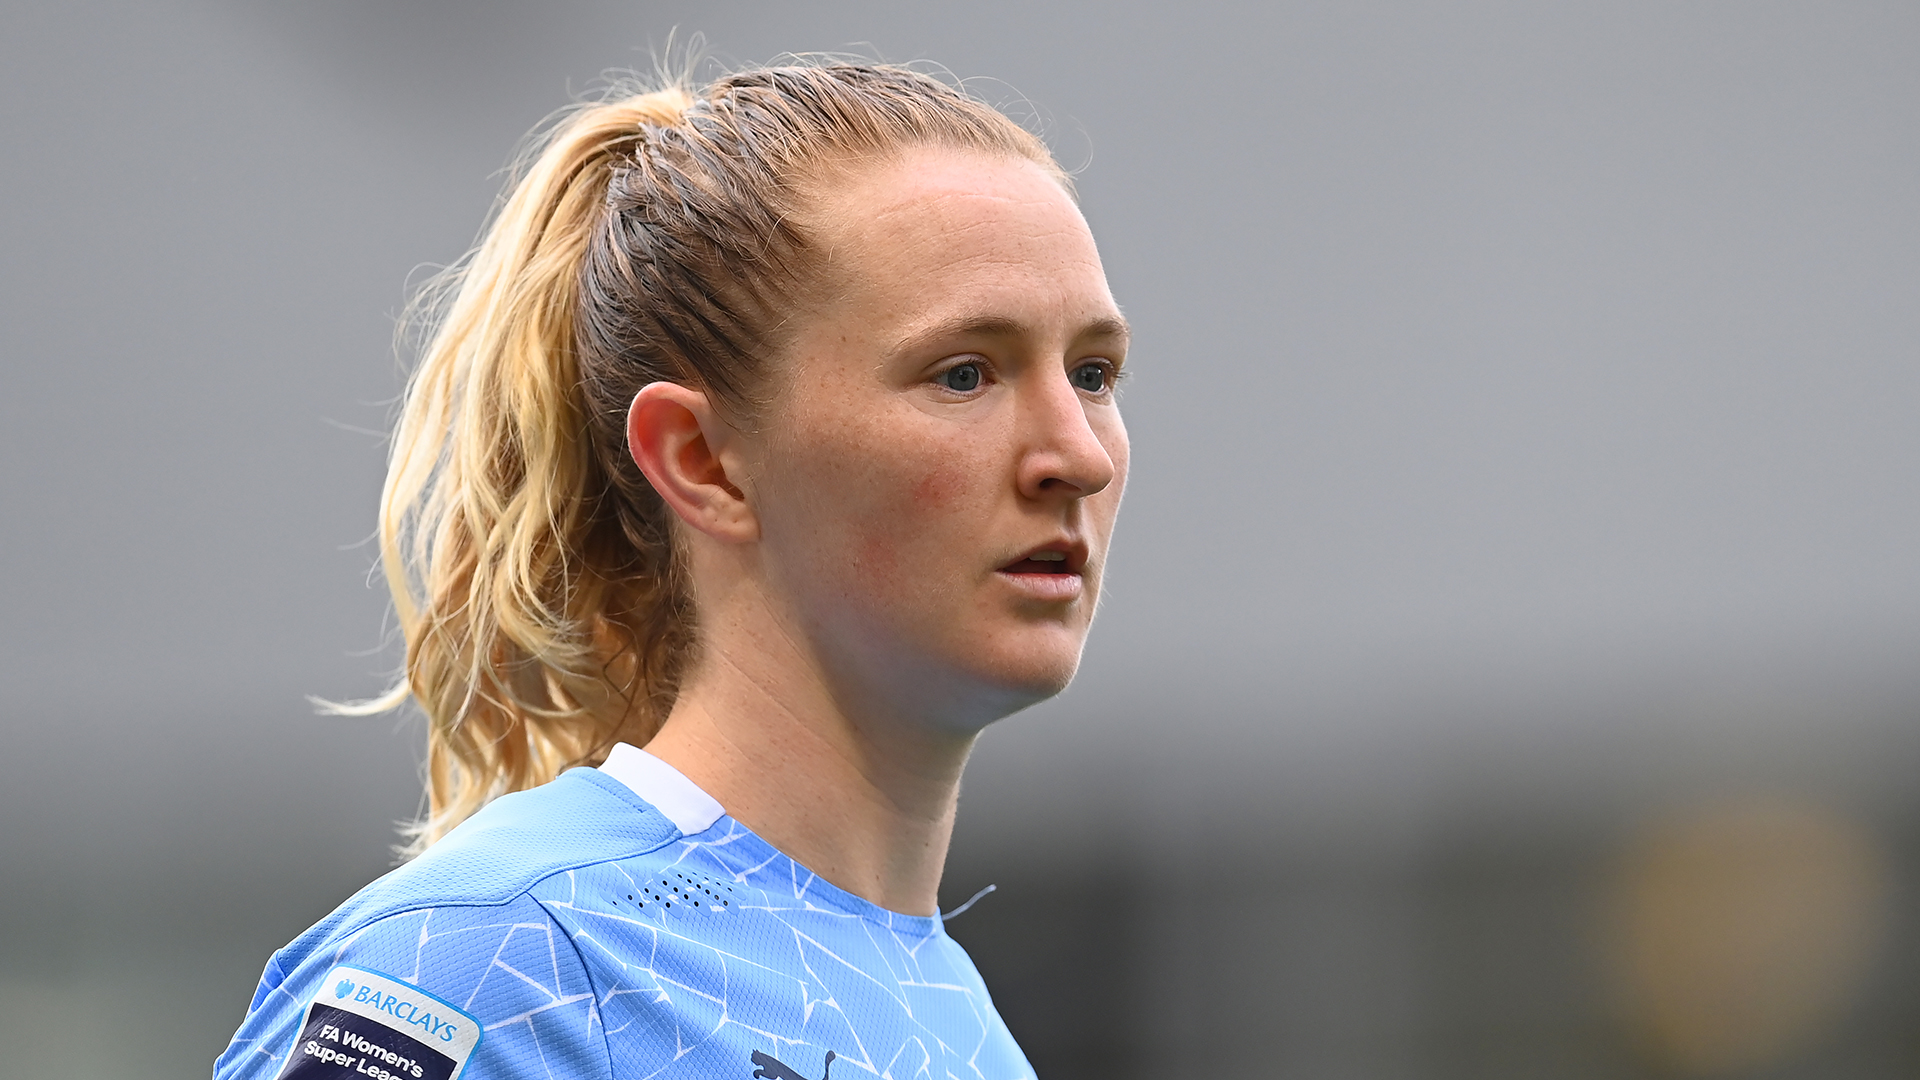 USWNT star Mewis doubtful for Manchester City clash with West Ham after picking up ankle injury in Colombia win